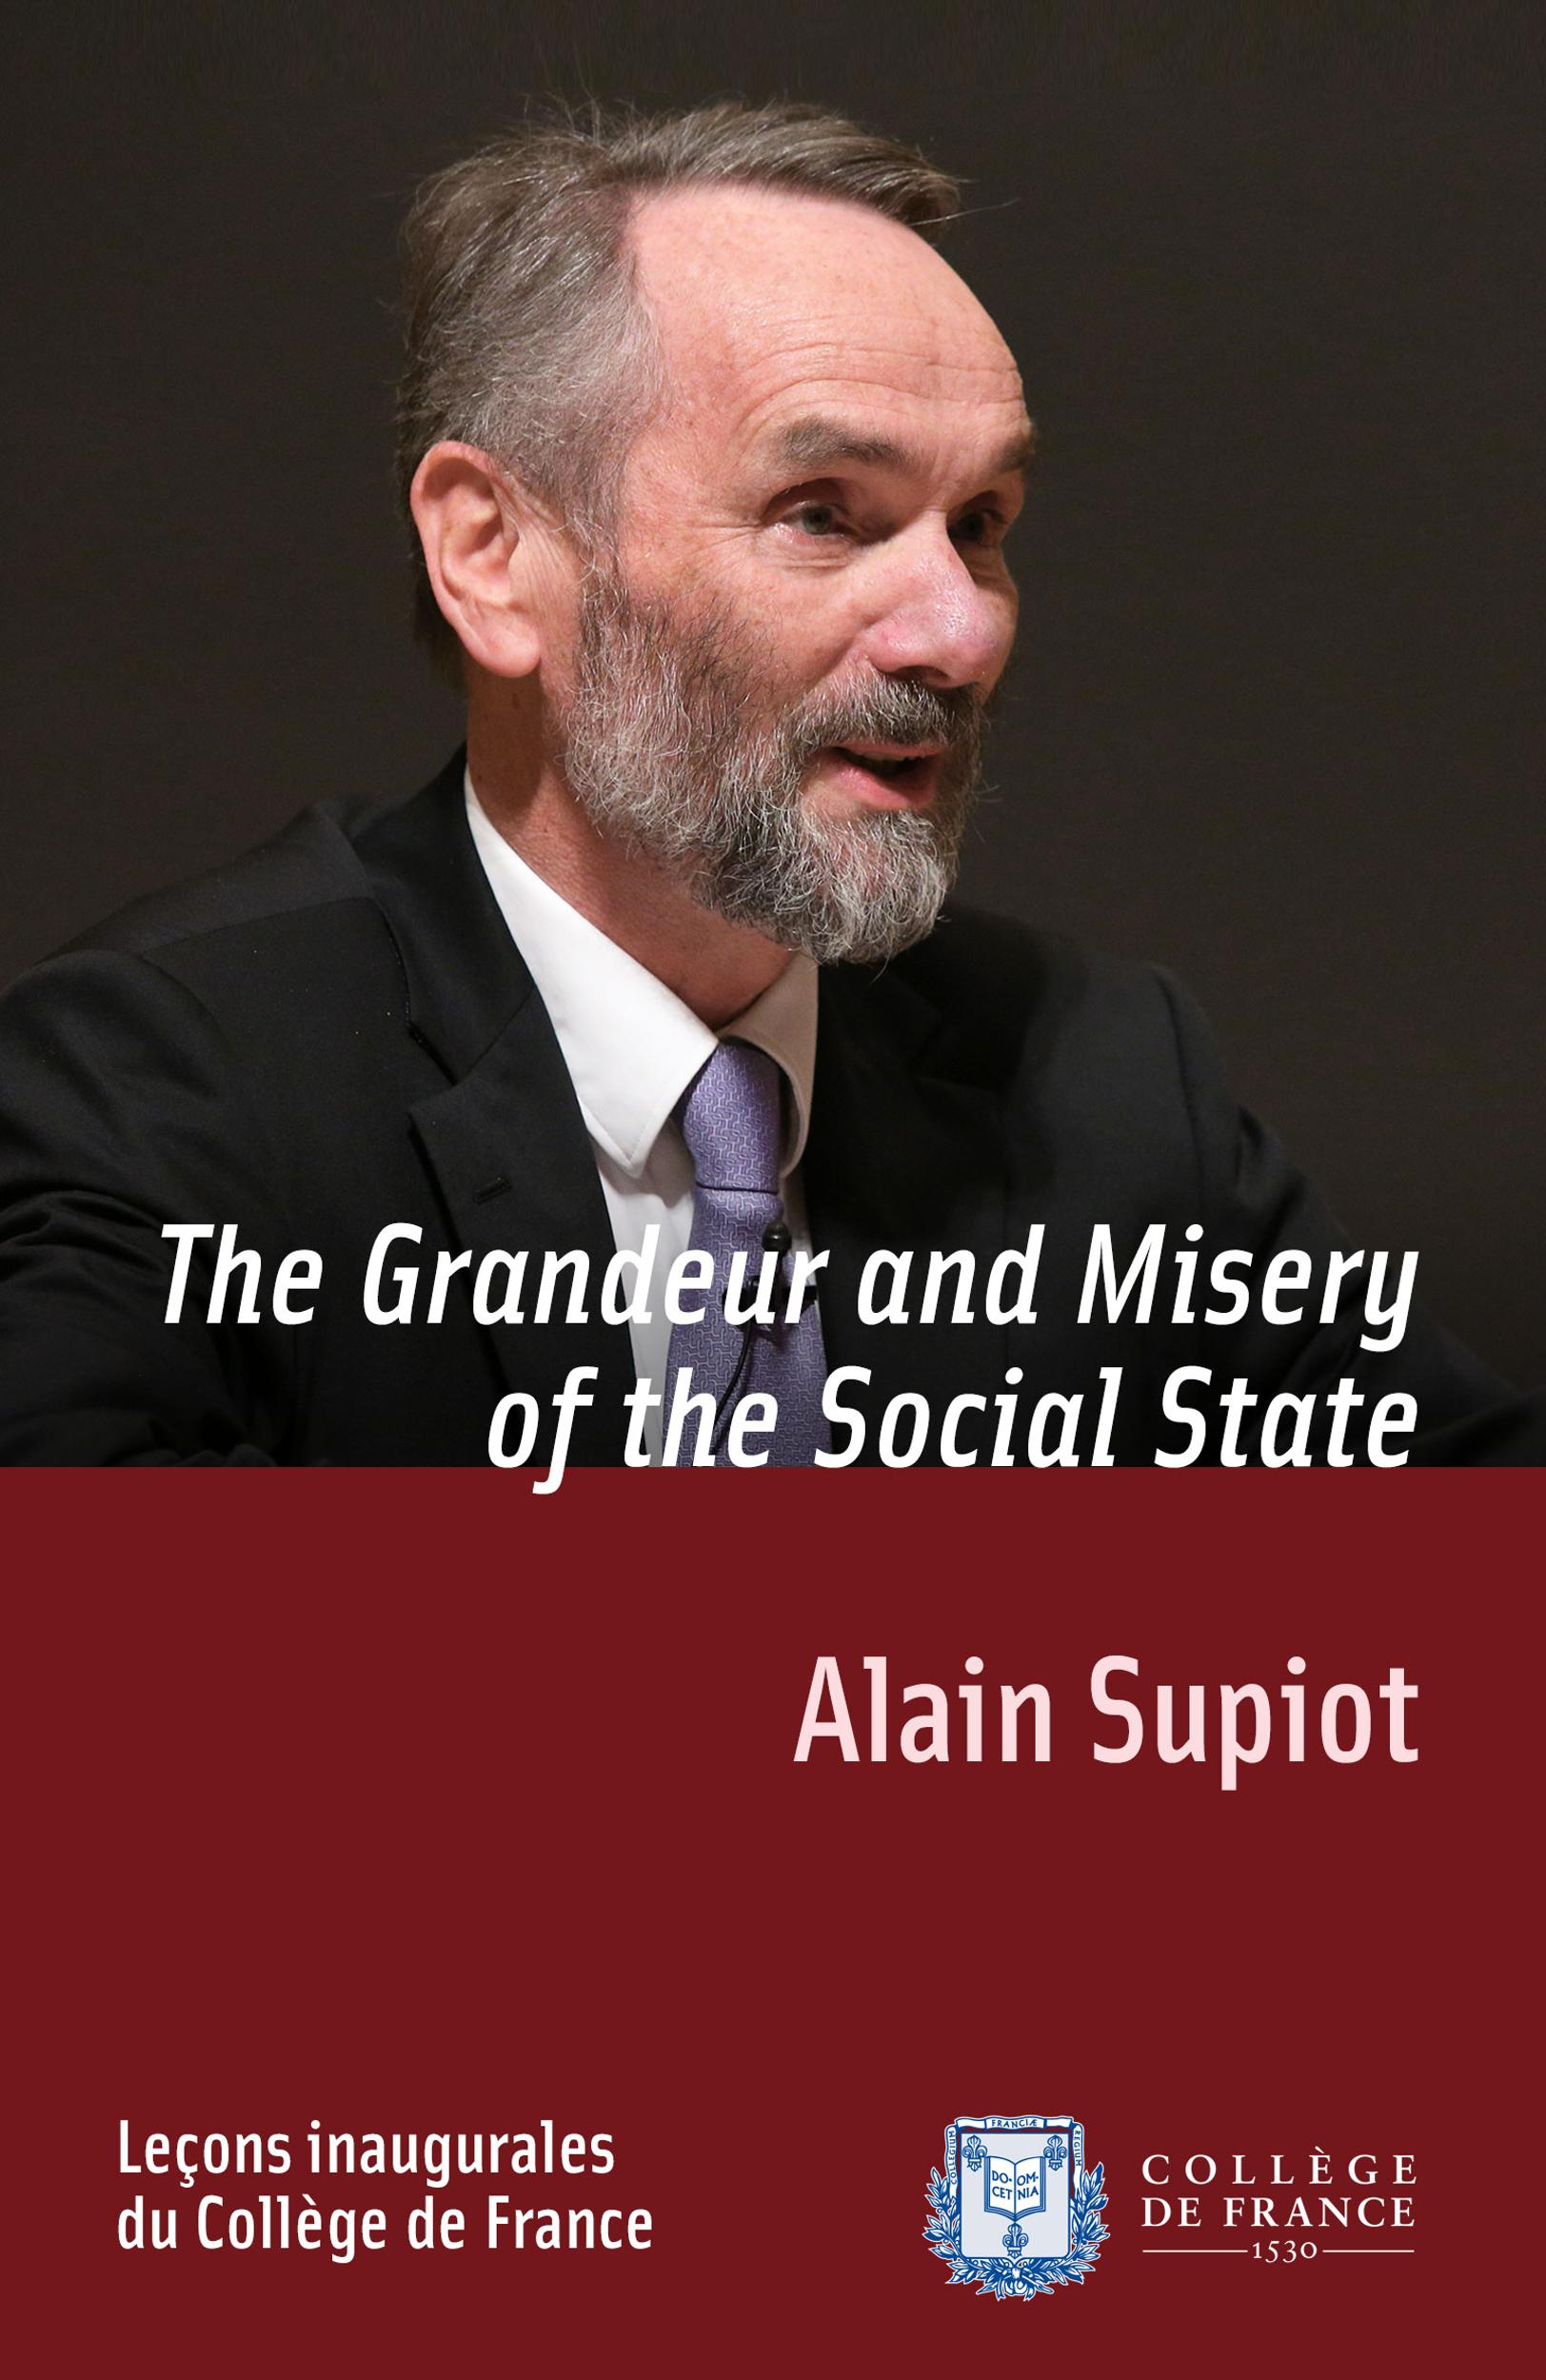 The Grandeur and Misery of the Social State, INAUGURAL LECTURE DELIVERED ON THURSDAY 29 NOVEMBER 2012